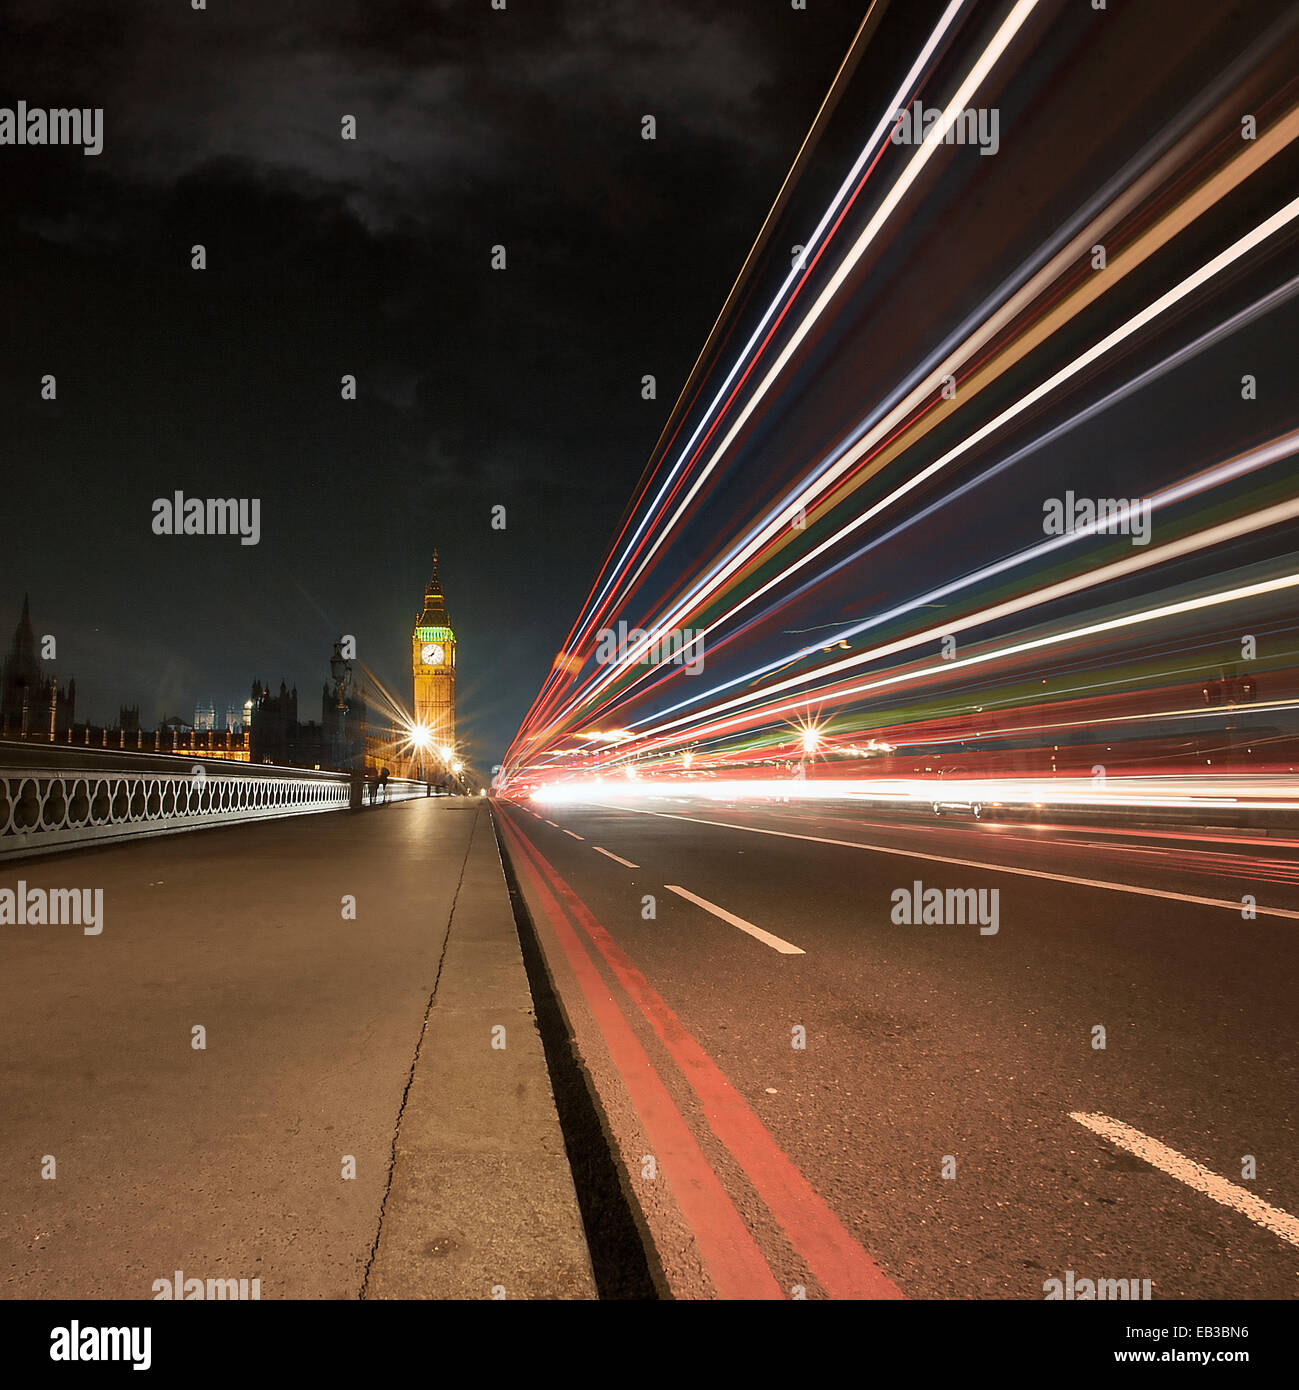 UK, England, London, Light trail on Westminster Bridge - Stock Image